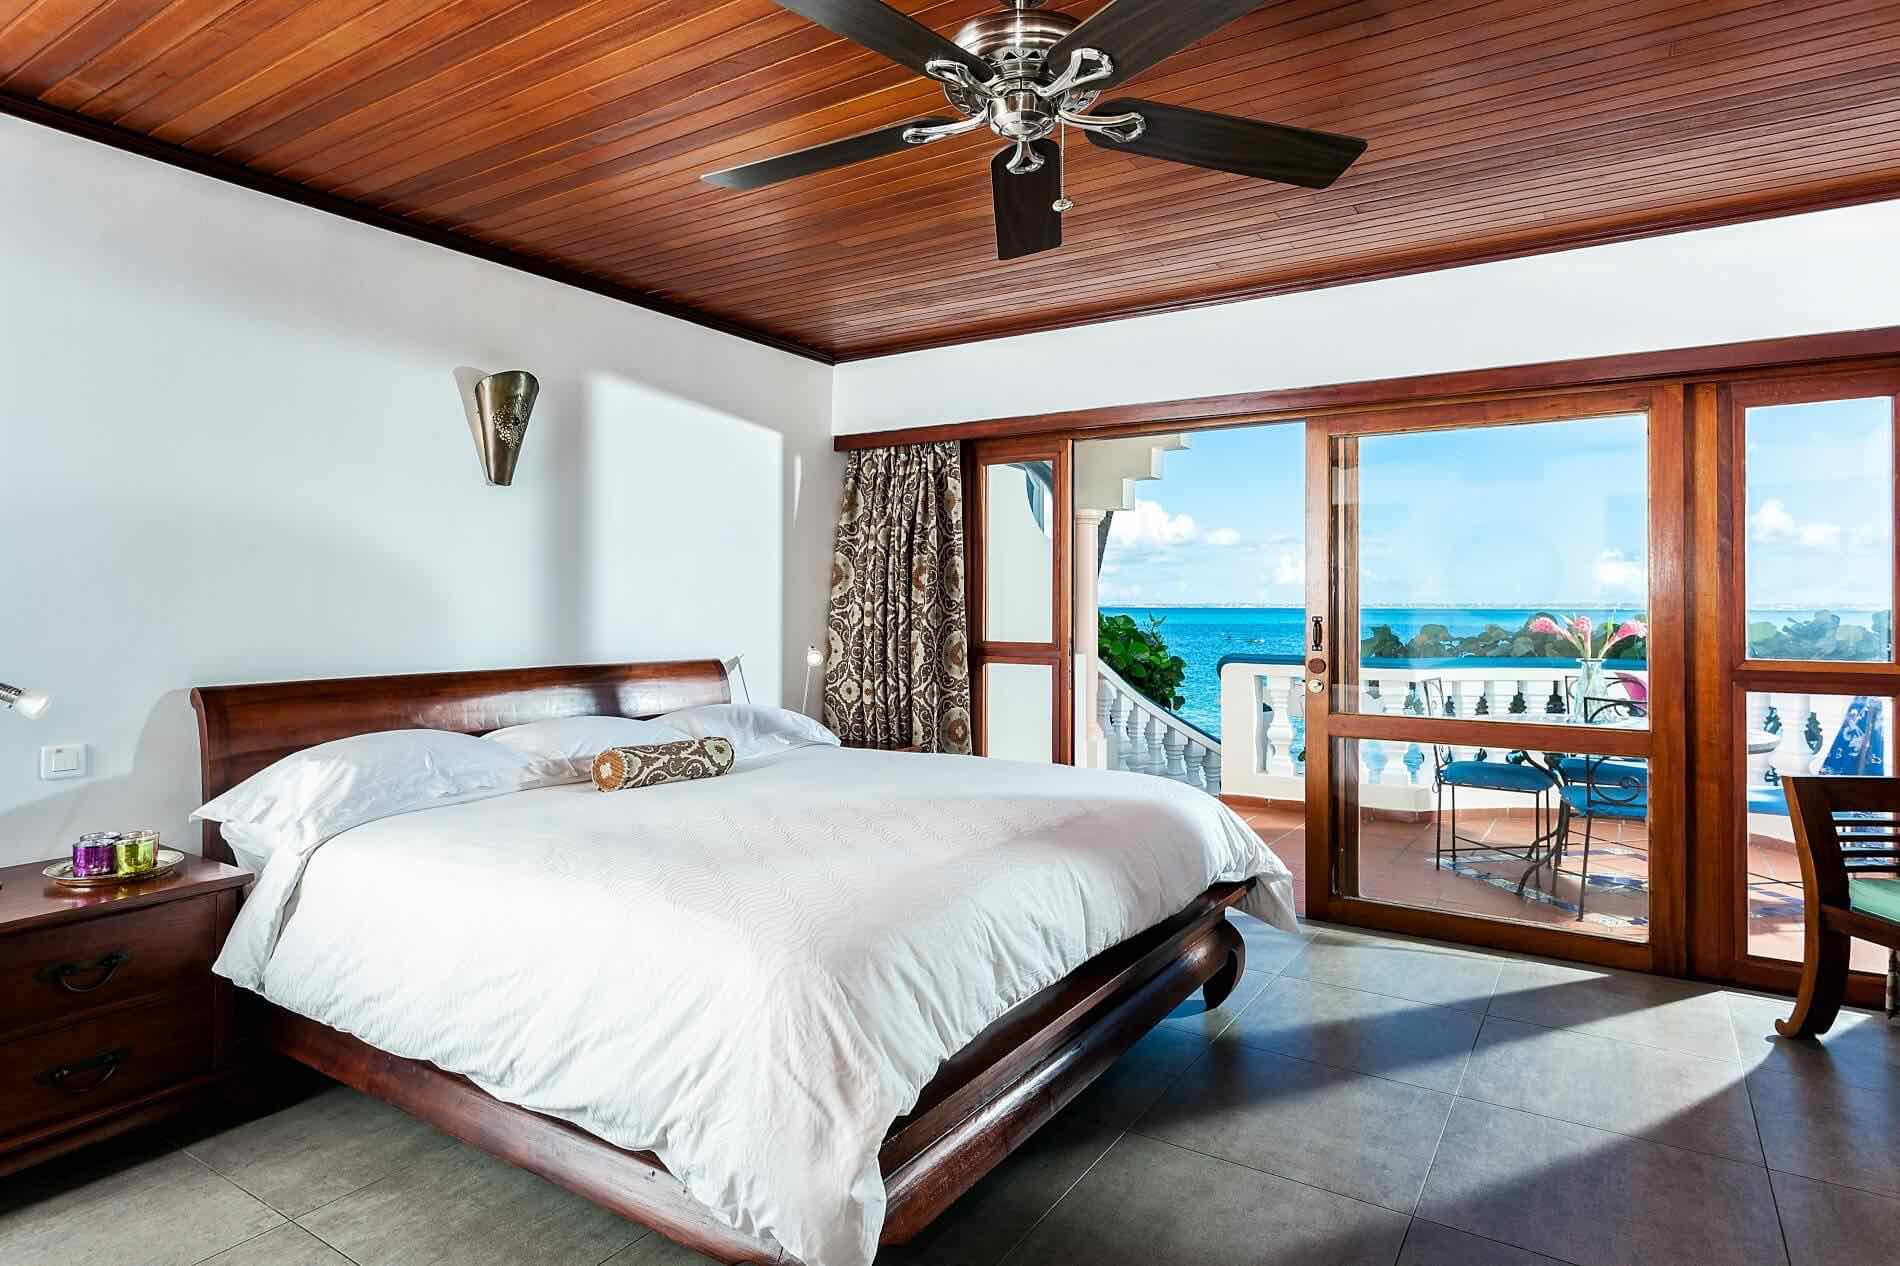 One of the best boutique hotels in St Martin is Le Petit Hotel showing room with ocean view